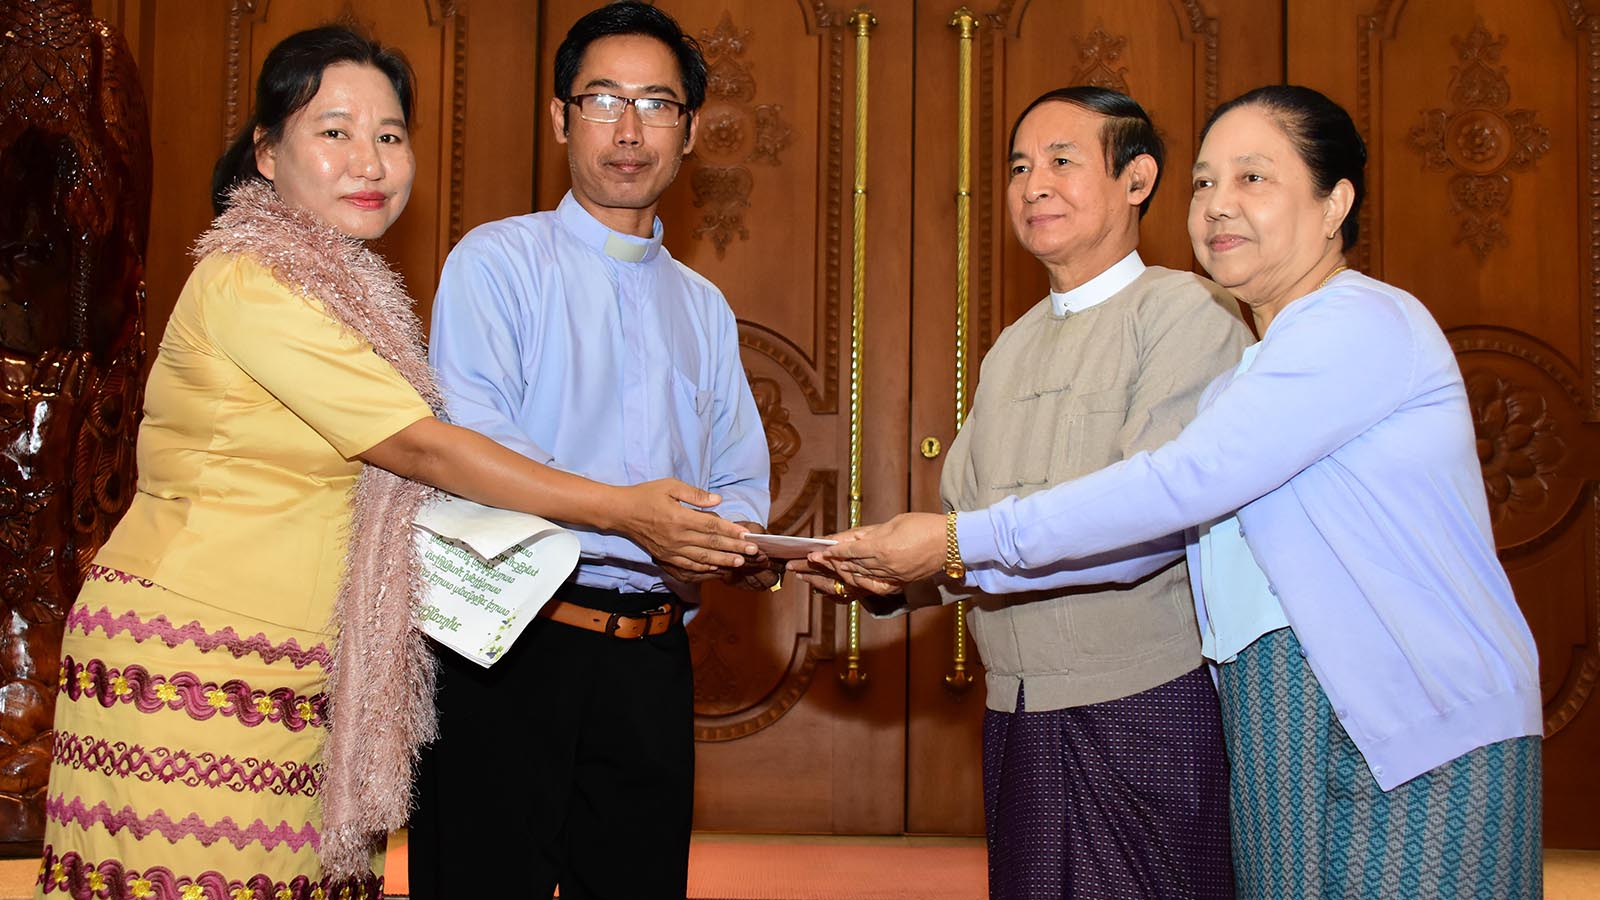 President U Win Myint and First Lady Daw Cho Cho presents gift to Reverend U Saw Aung Aung Lwin from All Nationals' Baptist Church in Nay Pyi Taw. Photo: MNA